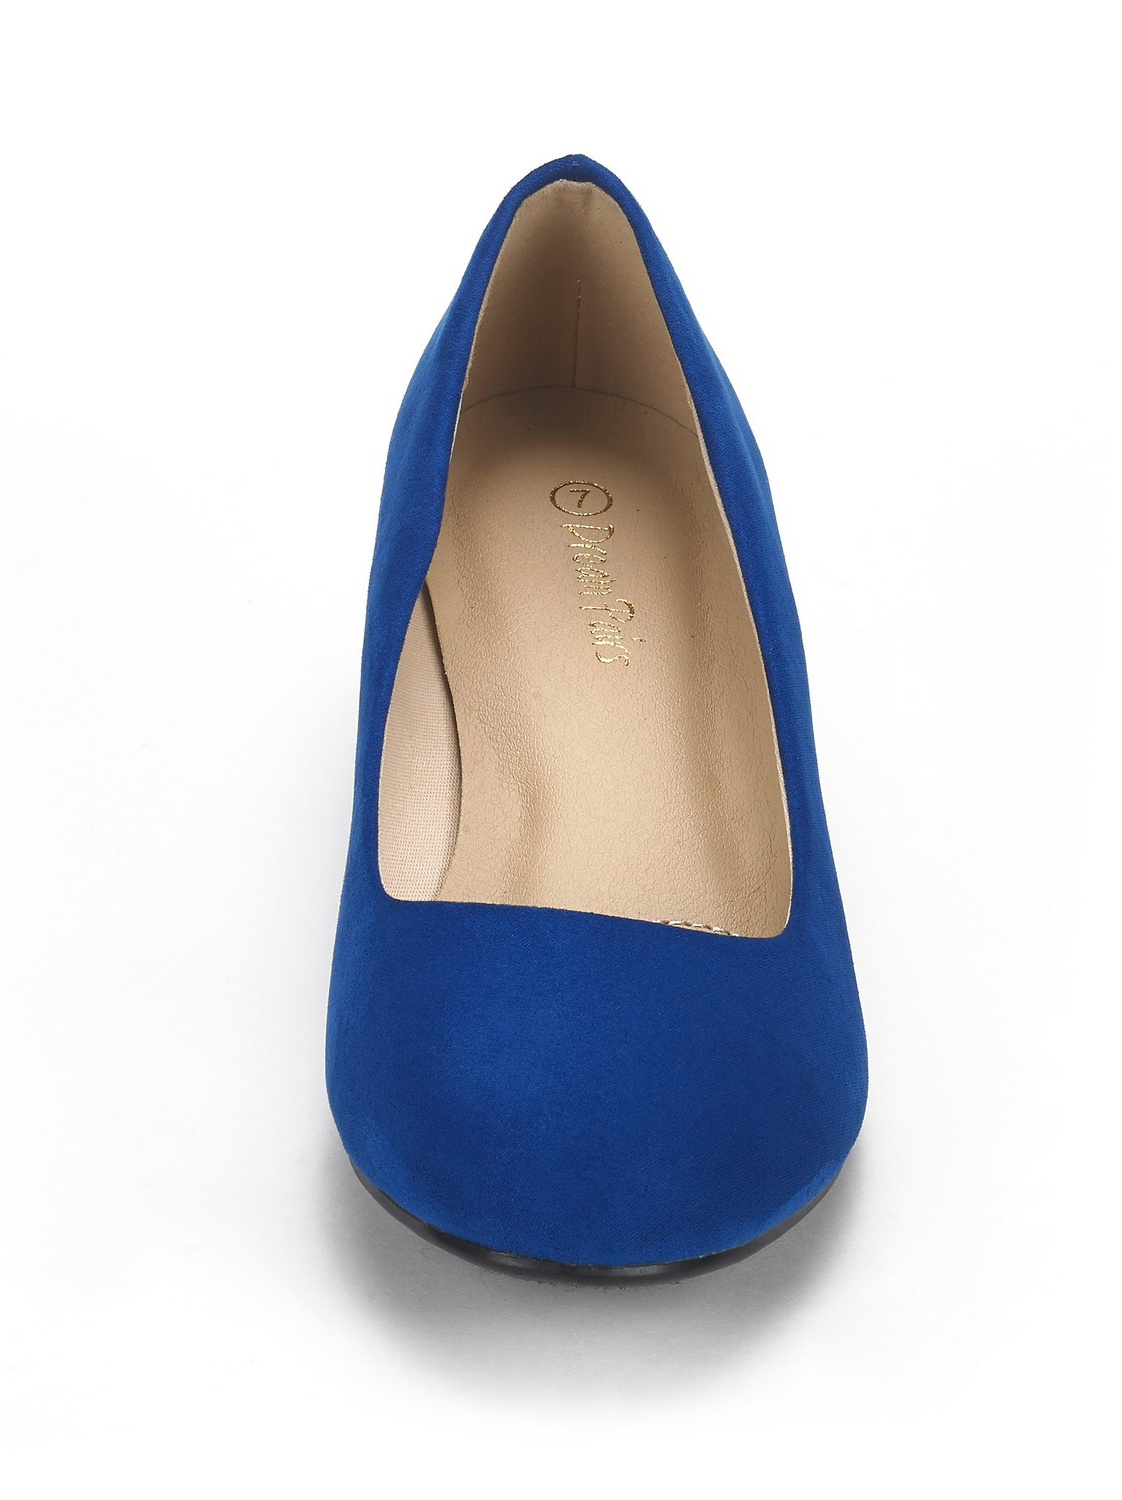 DREAM-PAIRS-Women-039-s-Mid-Wedge-Heel-Shoes-Slip-On-Comfort-Dress-Shoes-Suede-PU thumbnail 30